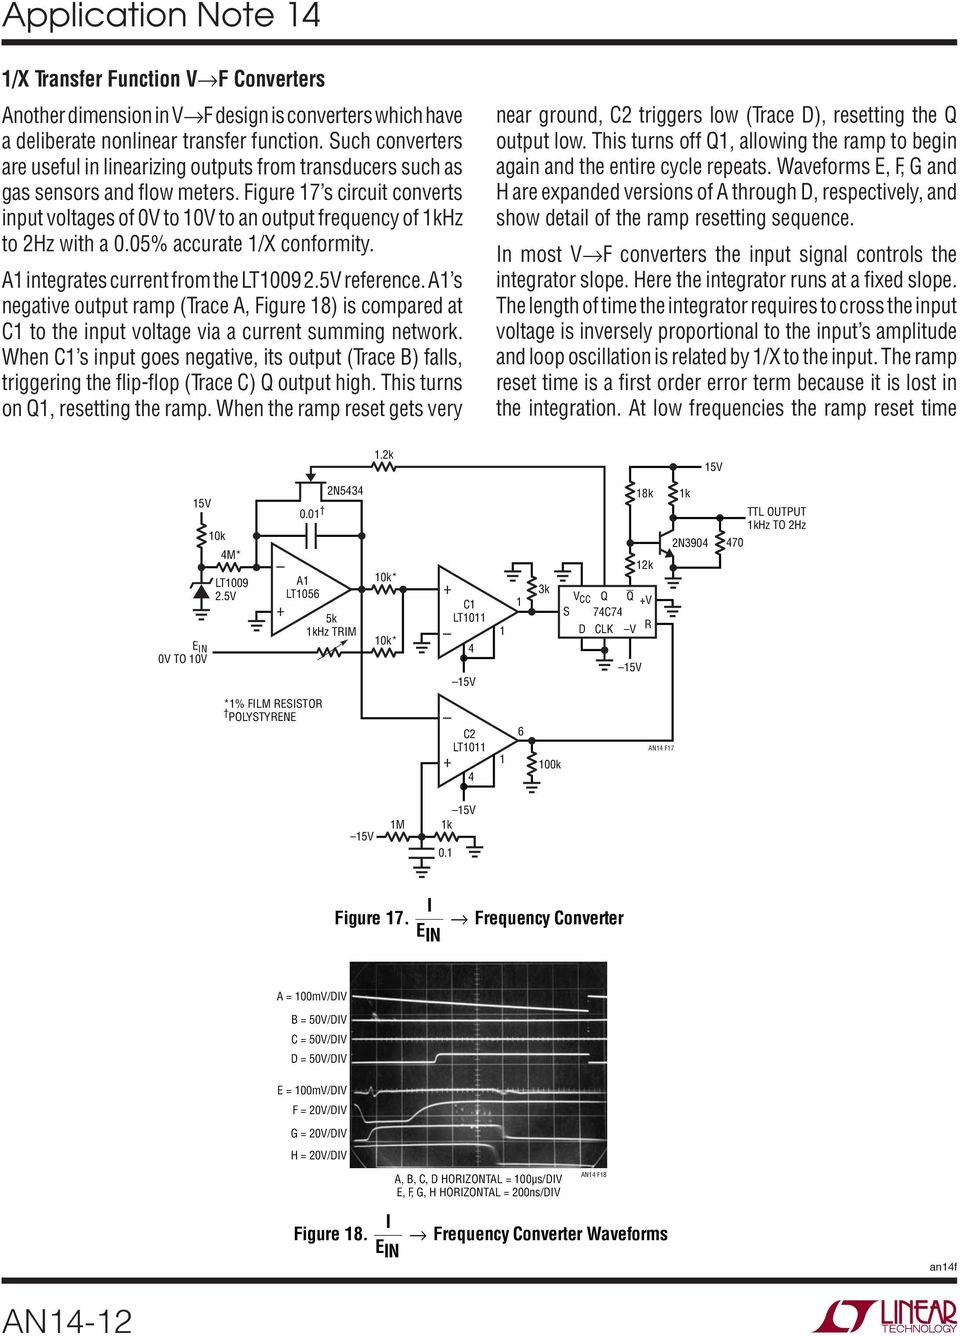 Designs For High Performance Voltage To Frequency Converters Pdf National Lm555 Datasheet Replacement Se555 Ne555 Series And The Connection Diagram Figure 7 S Circuit Converts Input Voltages Of 0v An Output